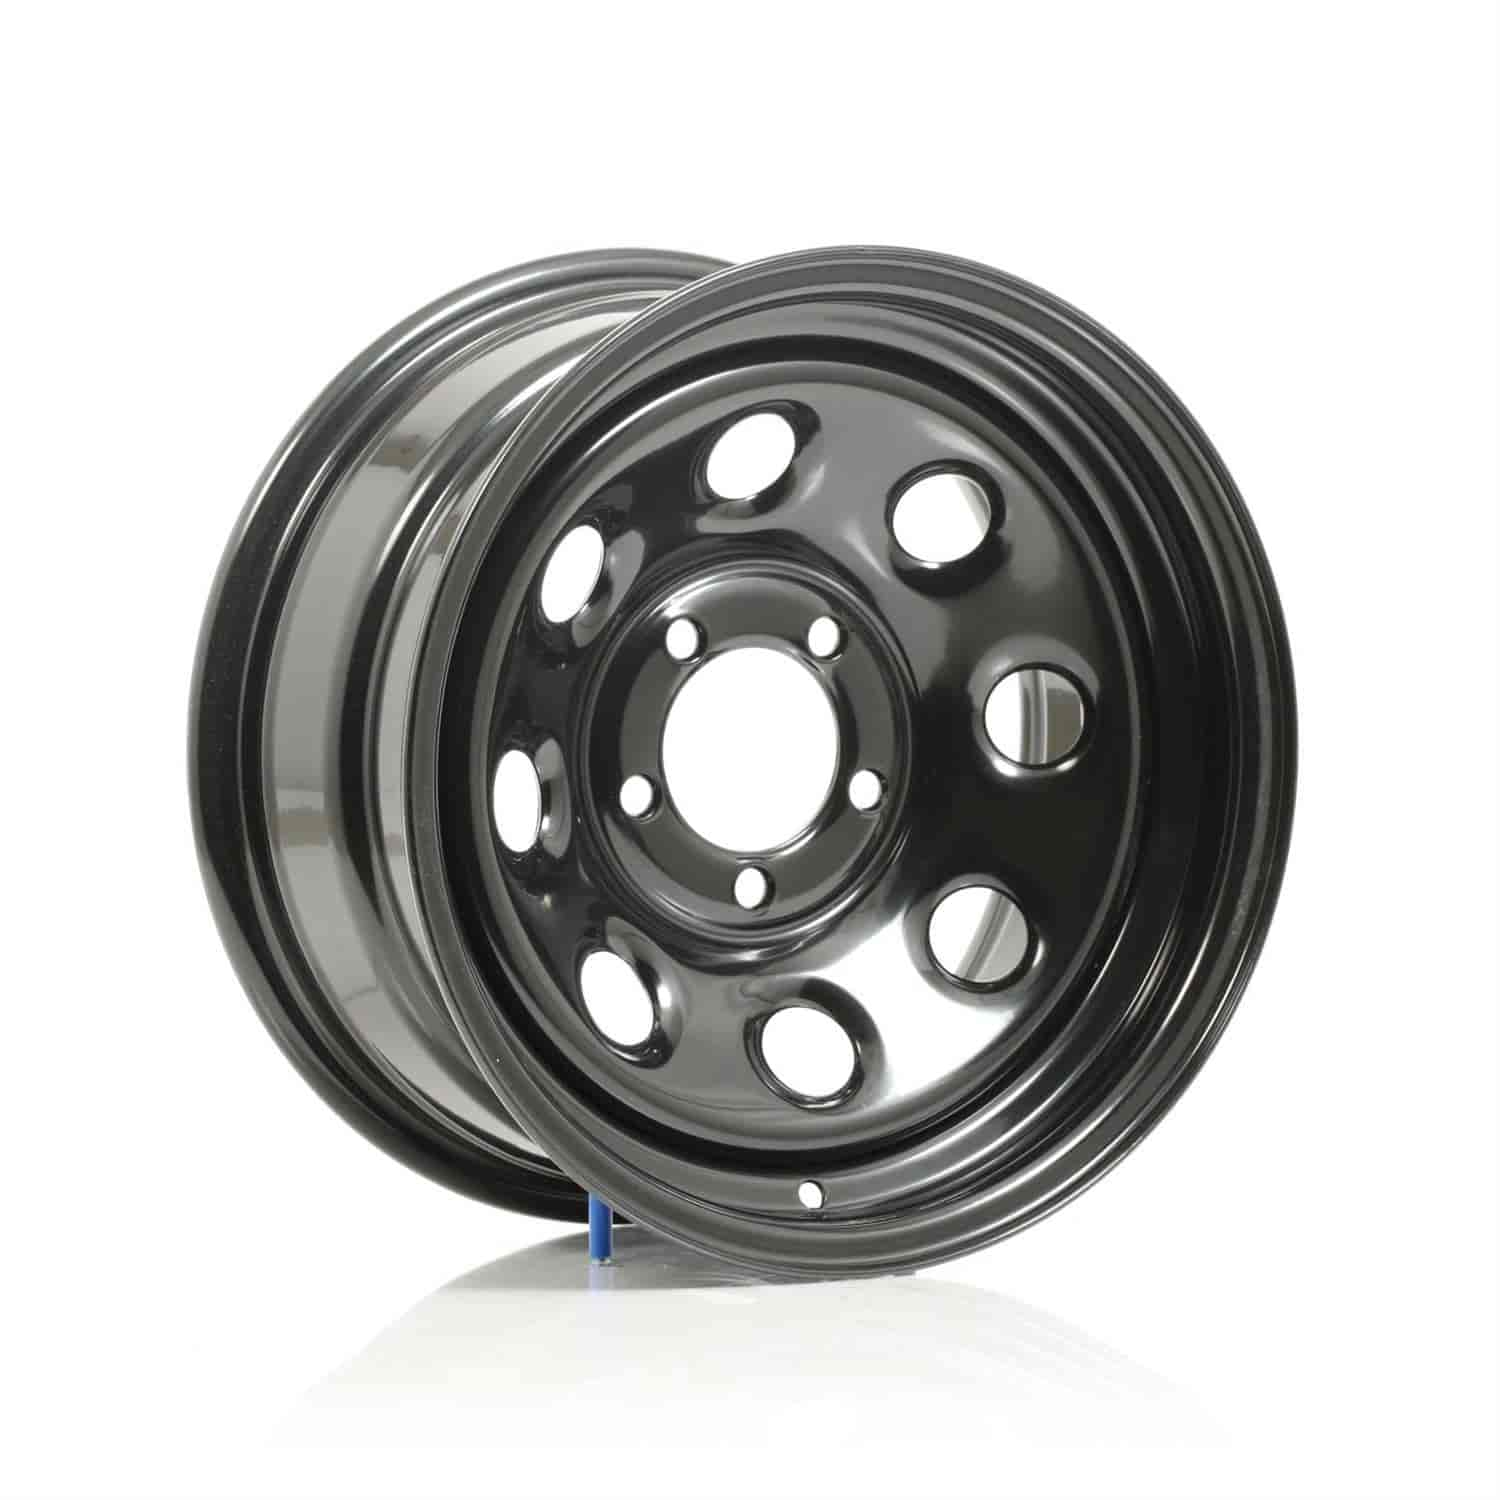 Cragar 3975760P - Cragar Black Soft 8 Wheels